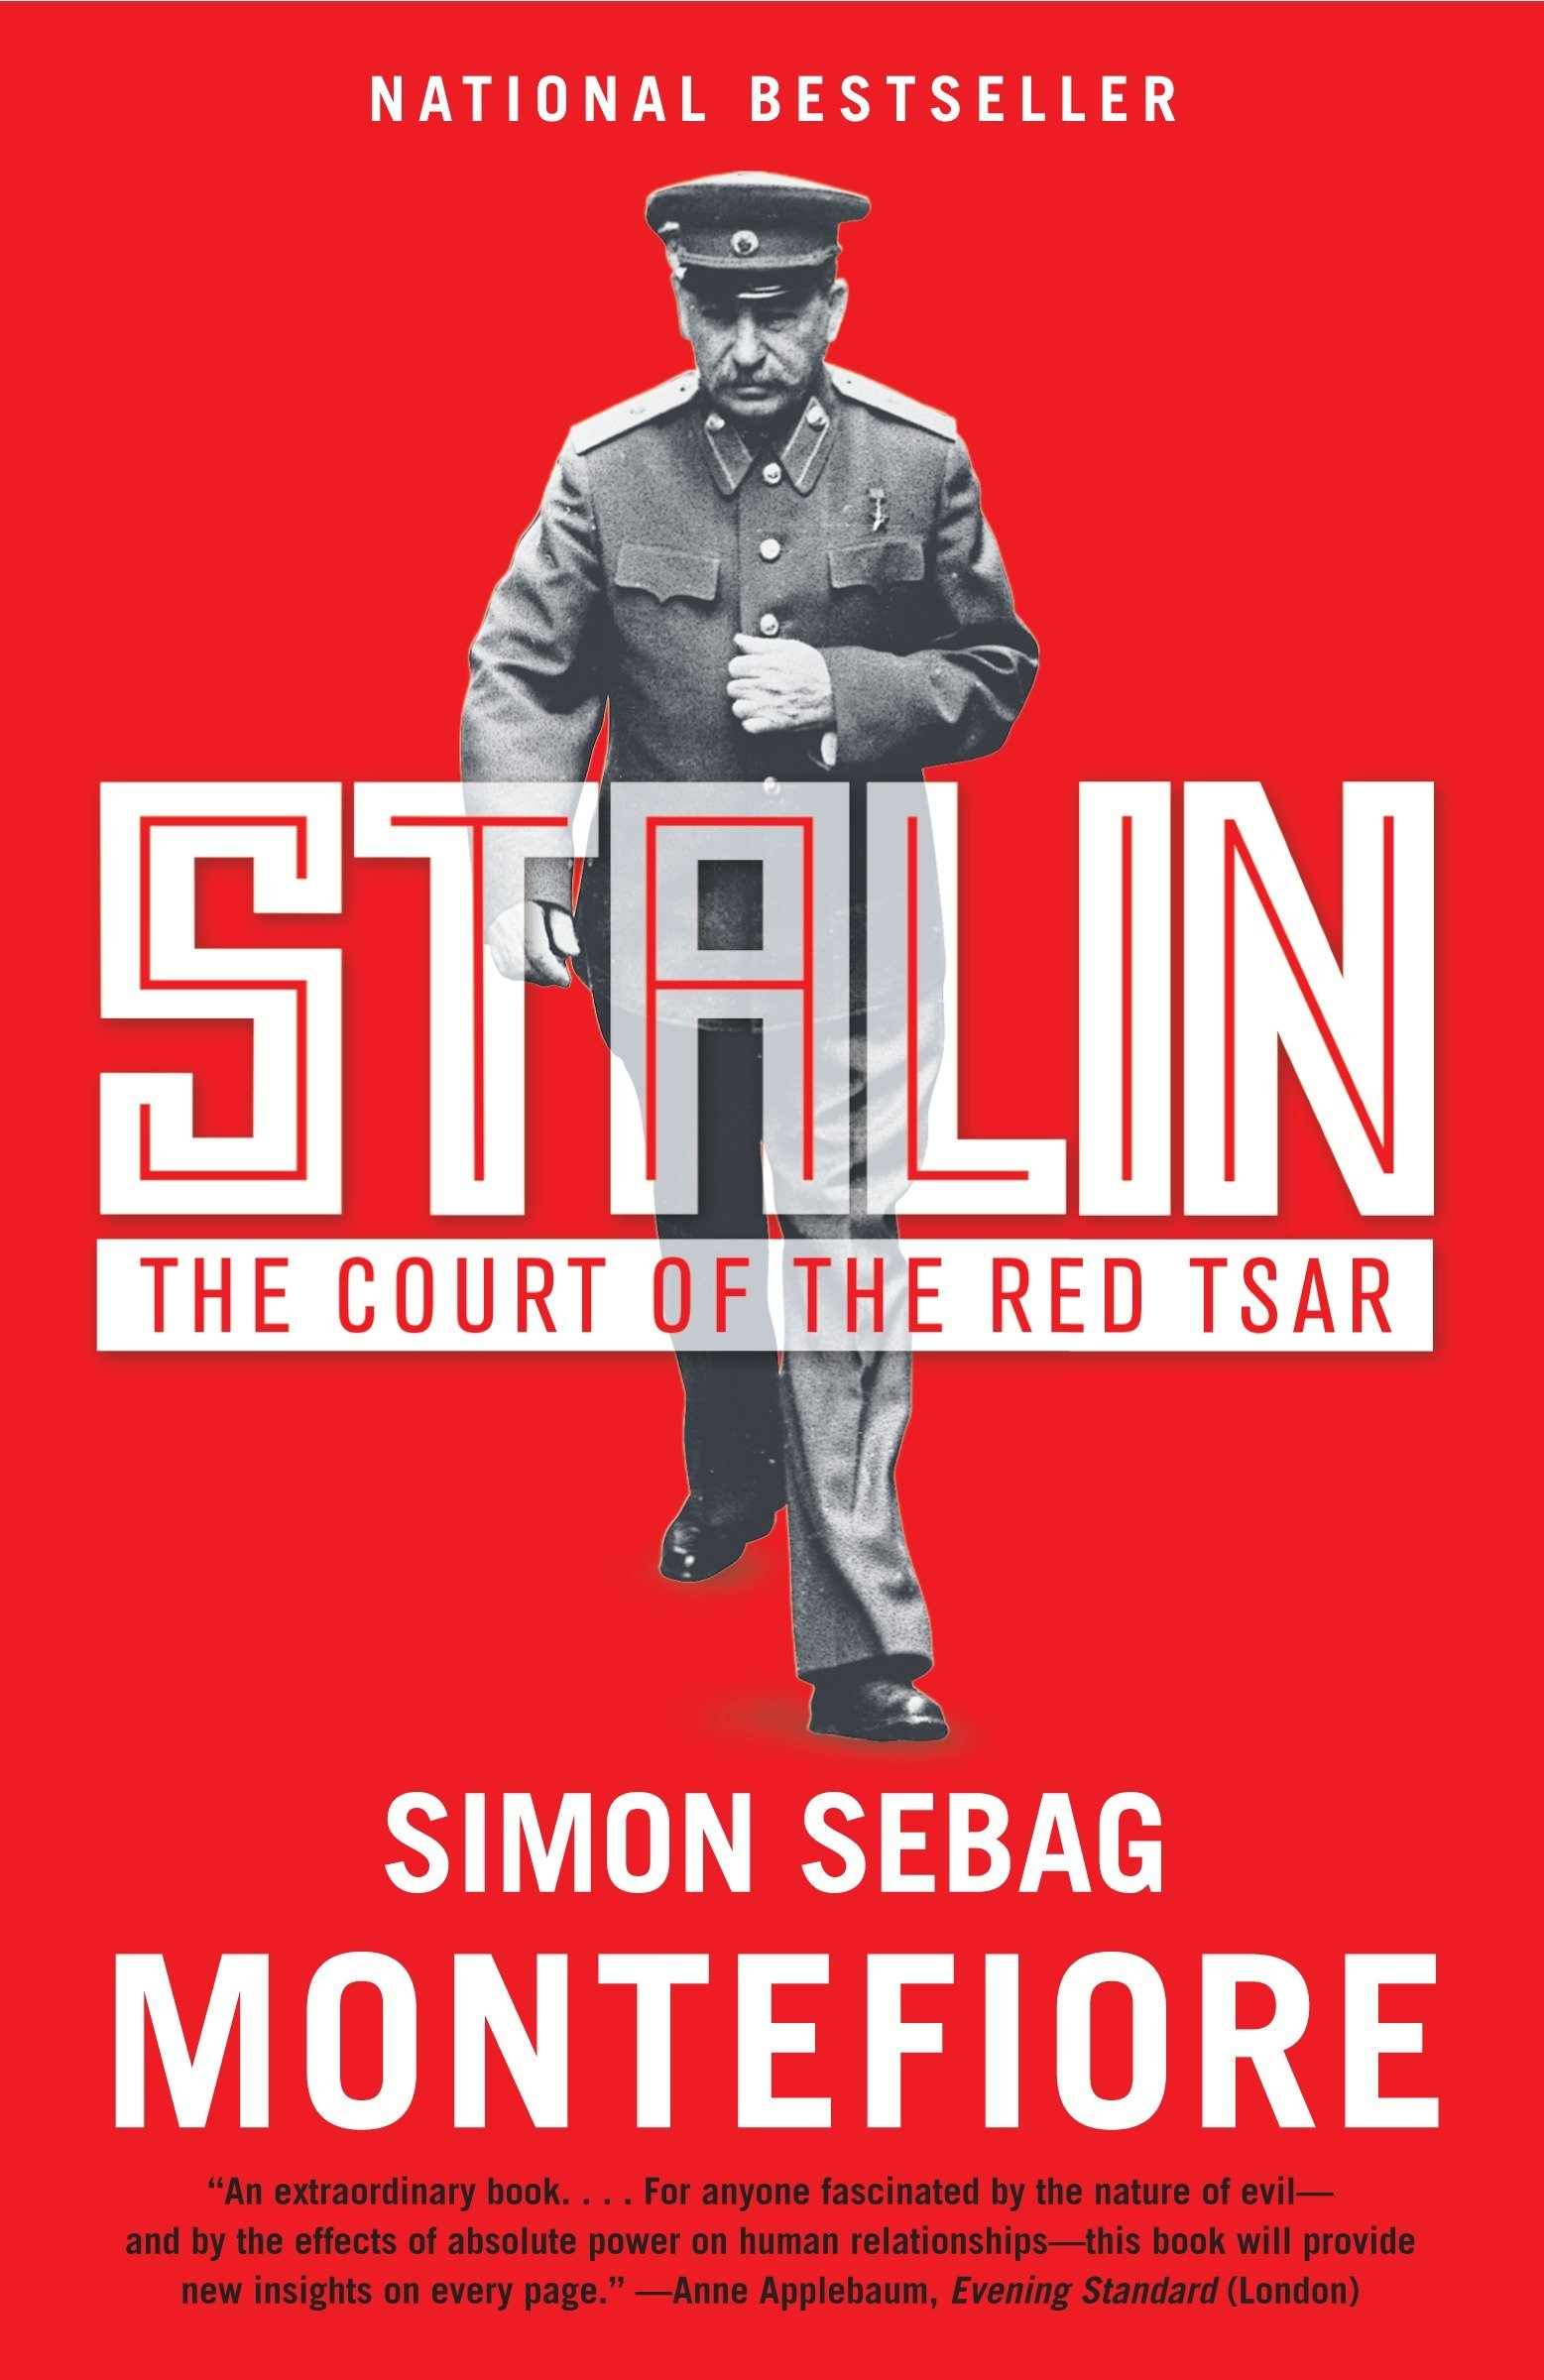 Stalin: The Court of the Red Tsar: Amazon.es: Simon Sebag Montefiore: Libros en idiomas extranjeros